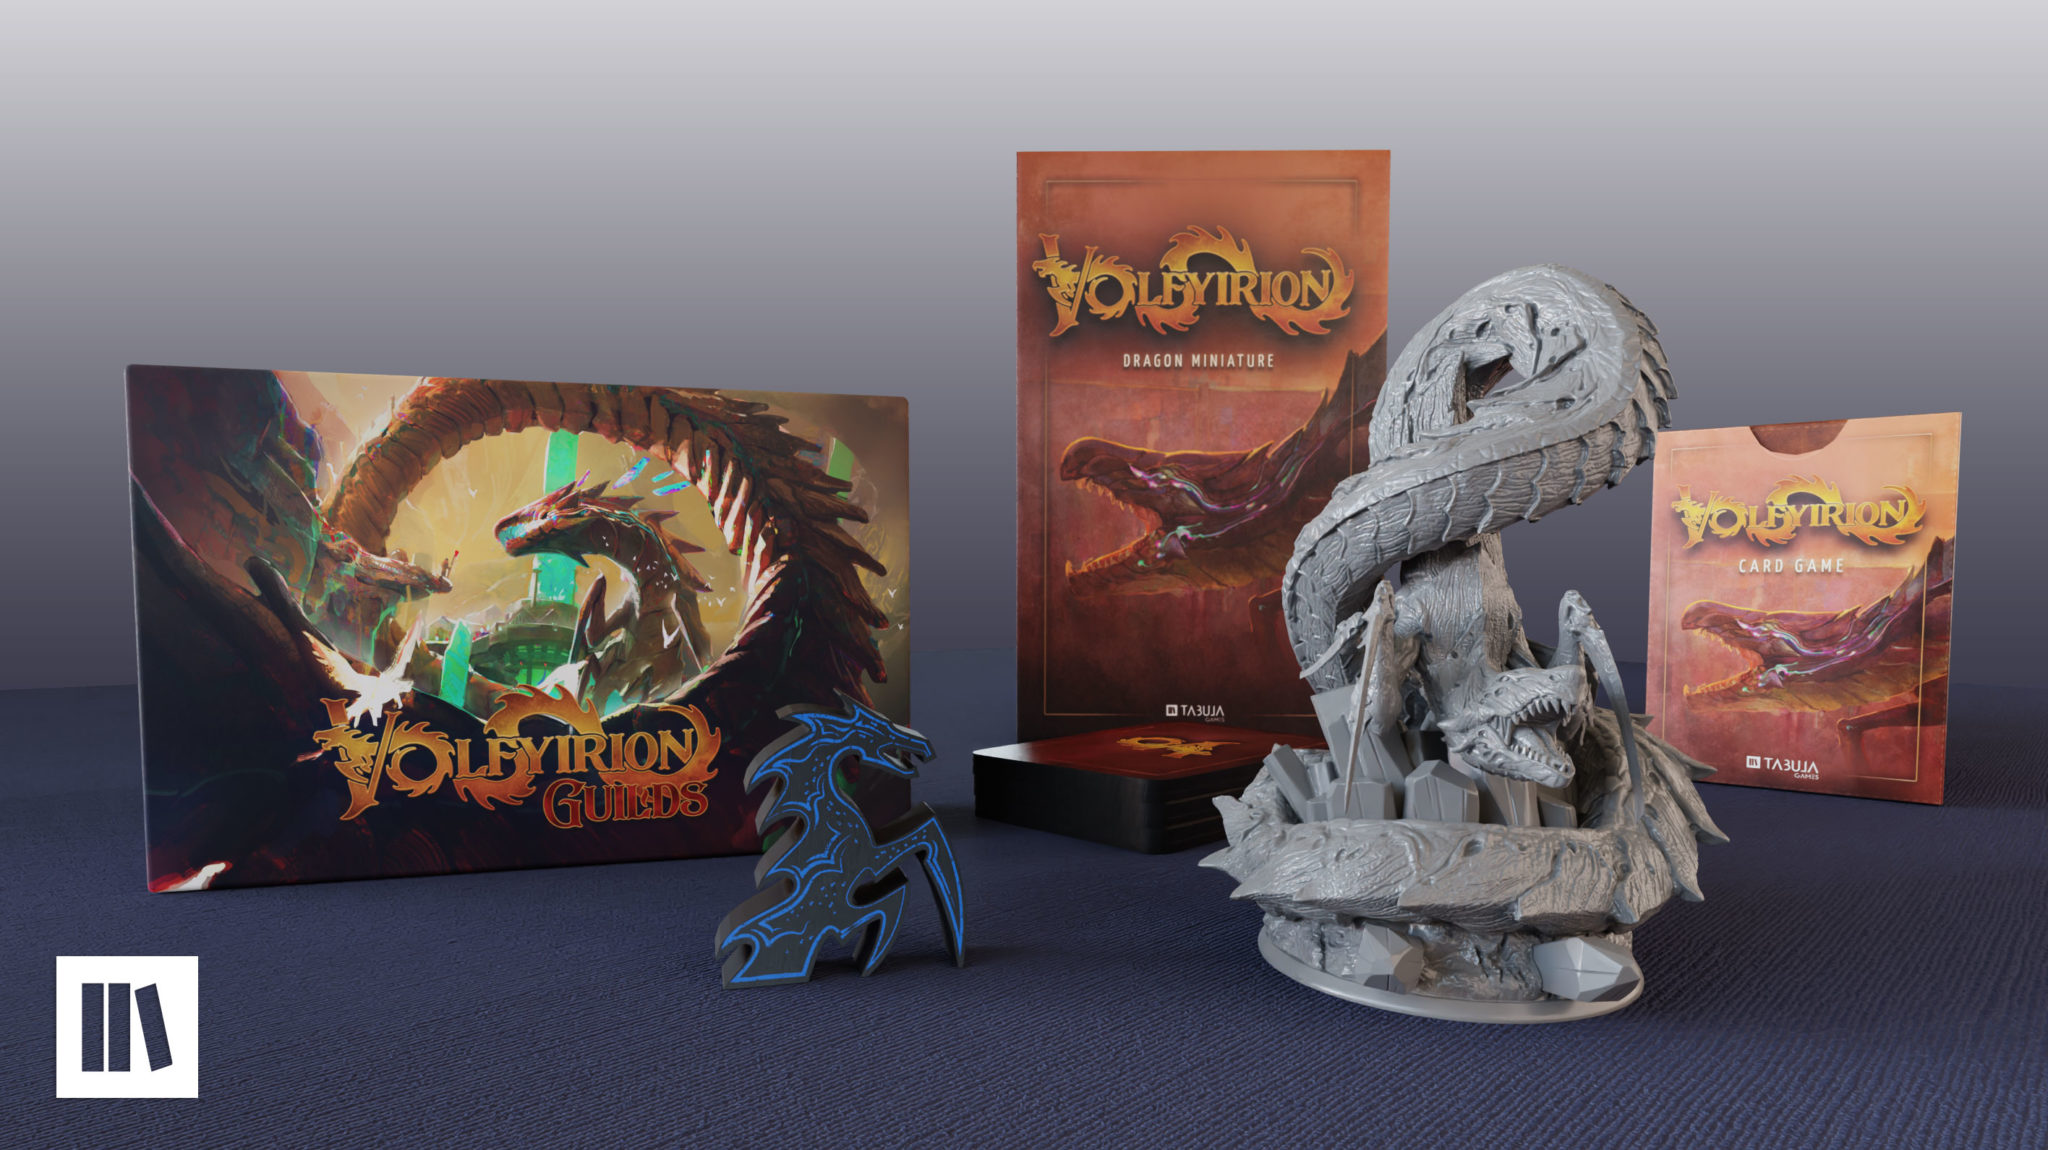 Volfyirion Guilds board game by Tabula Games